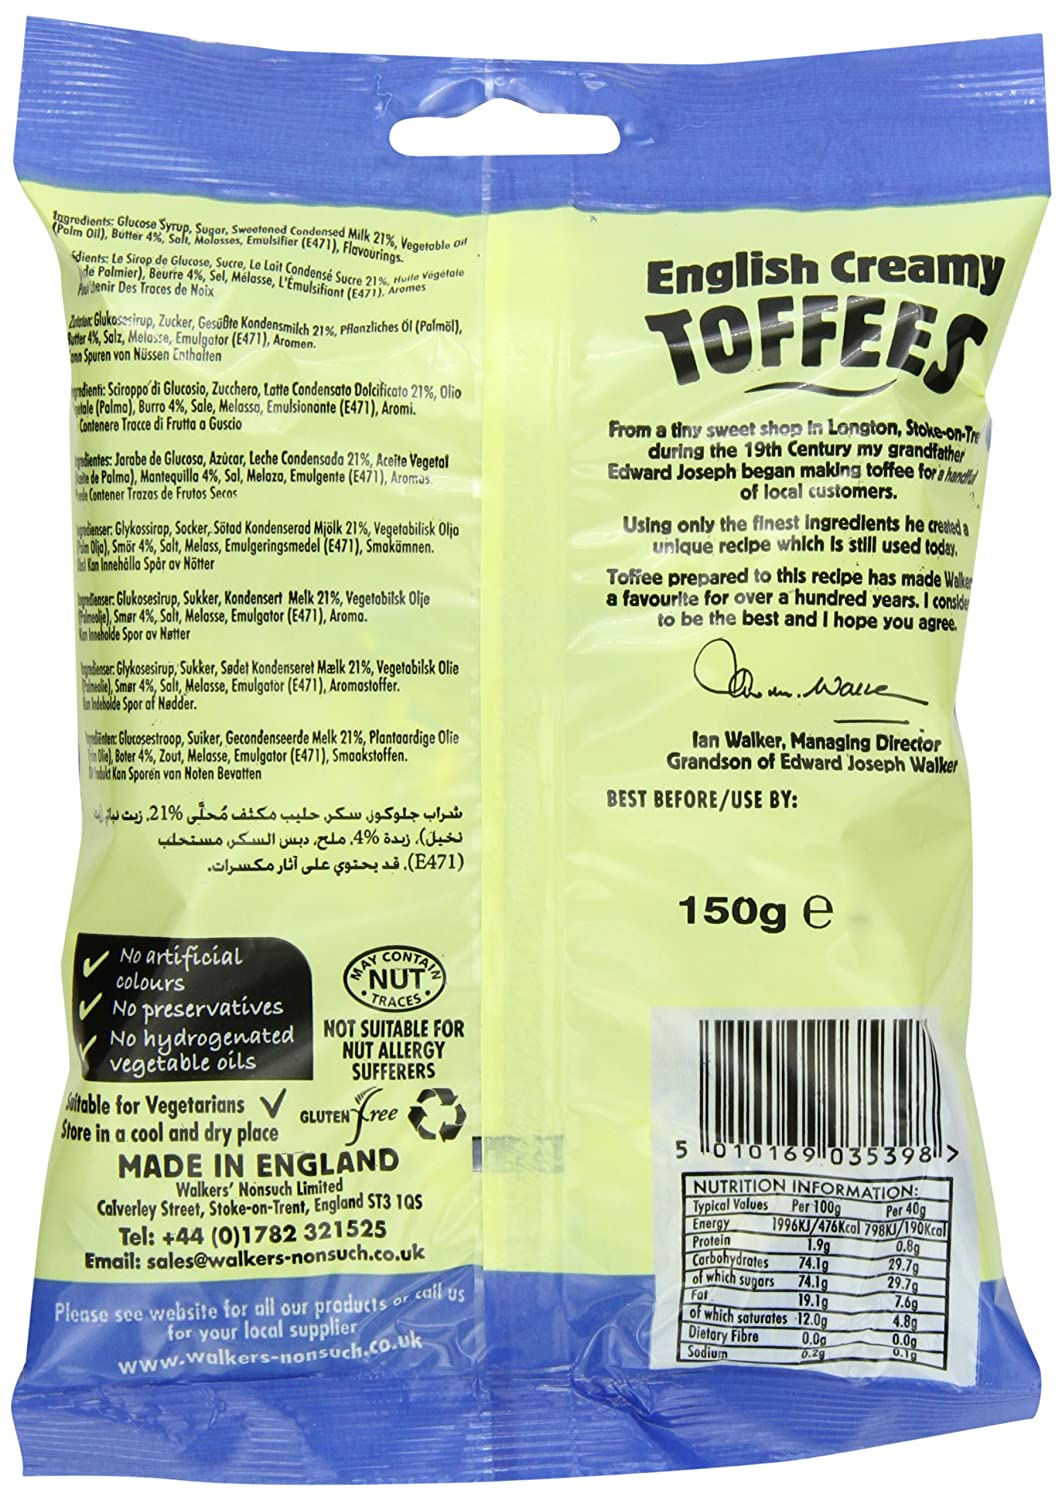 Amazon.com : Walkers Nonsuch Toffees, English Creamy, 5.29-Ounce Bag (Pack of 12) : Toffee Candy : Grocery & Gourmet Food